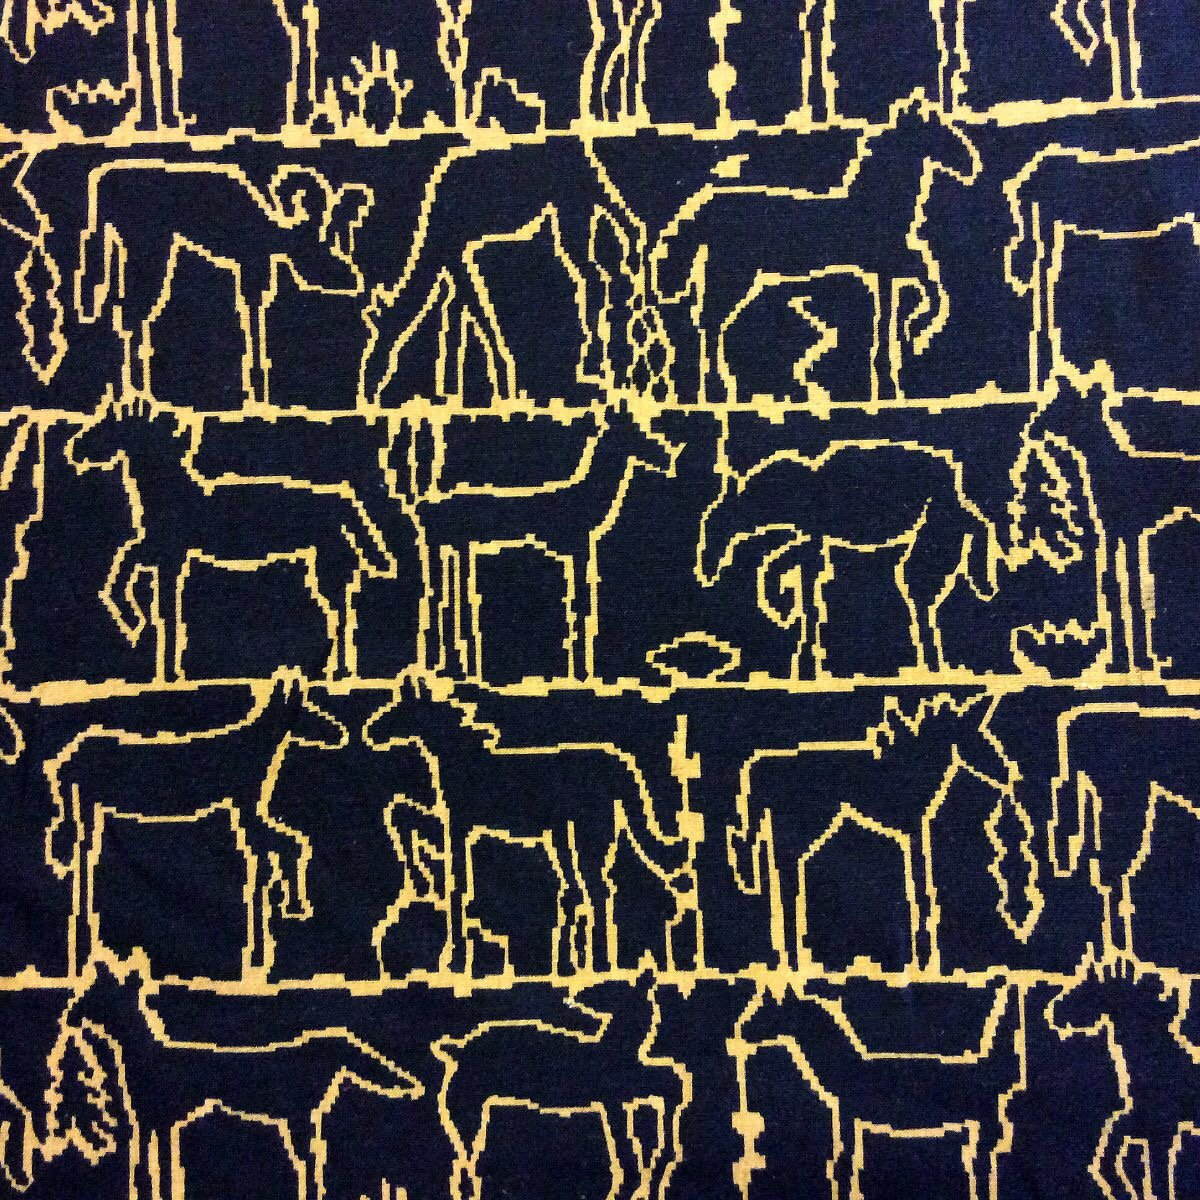 Brunschwig & Fils Paloma Picasso Horse Equus Classic Print Linen Texture Black and Brown Rams Deer Linen Cotton Fabric BF23